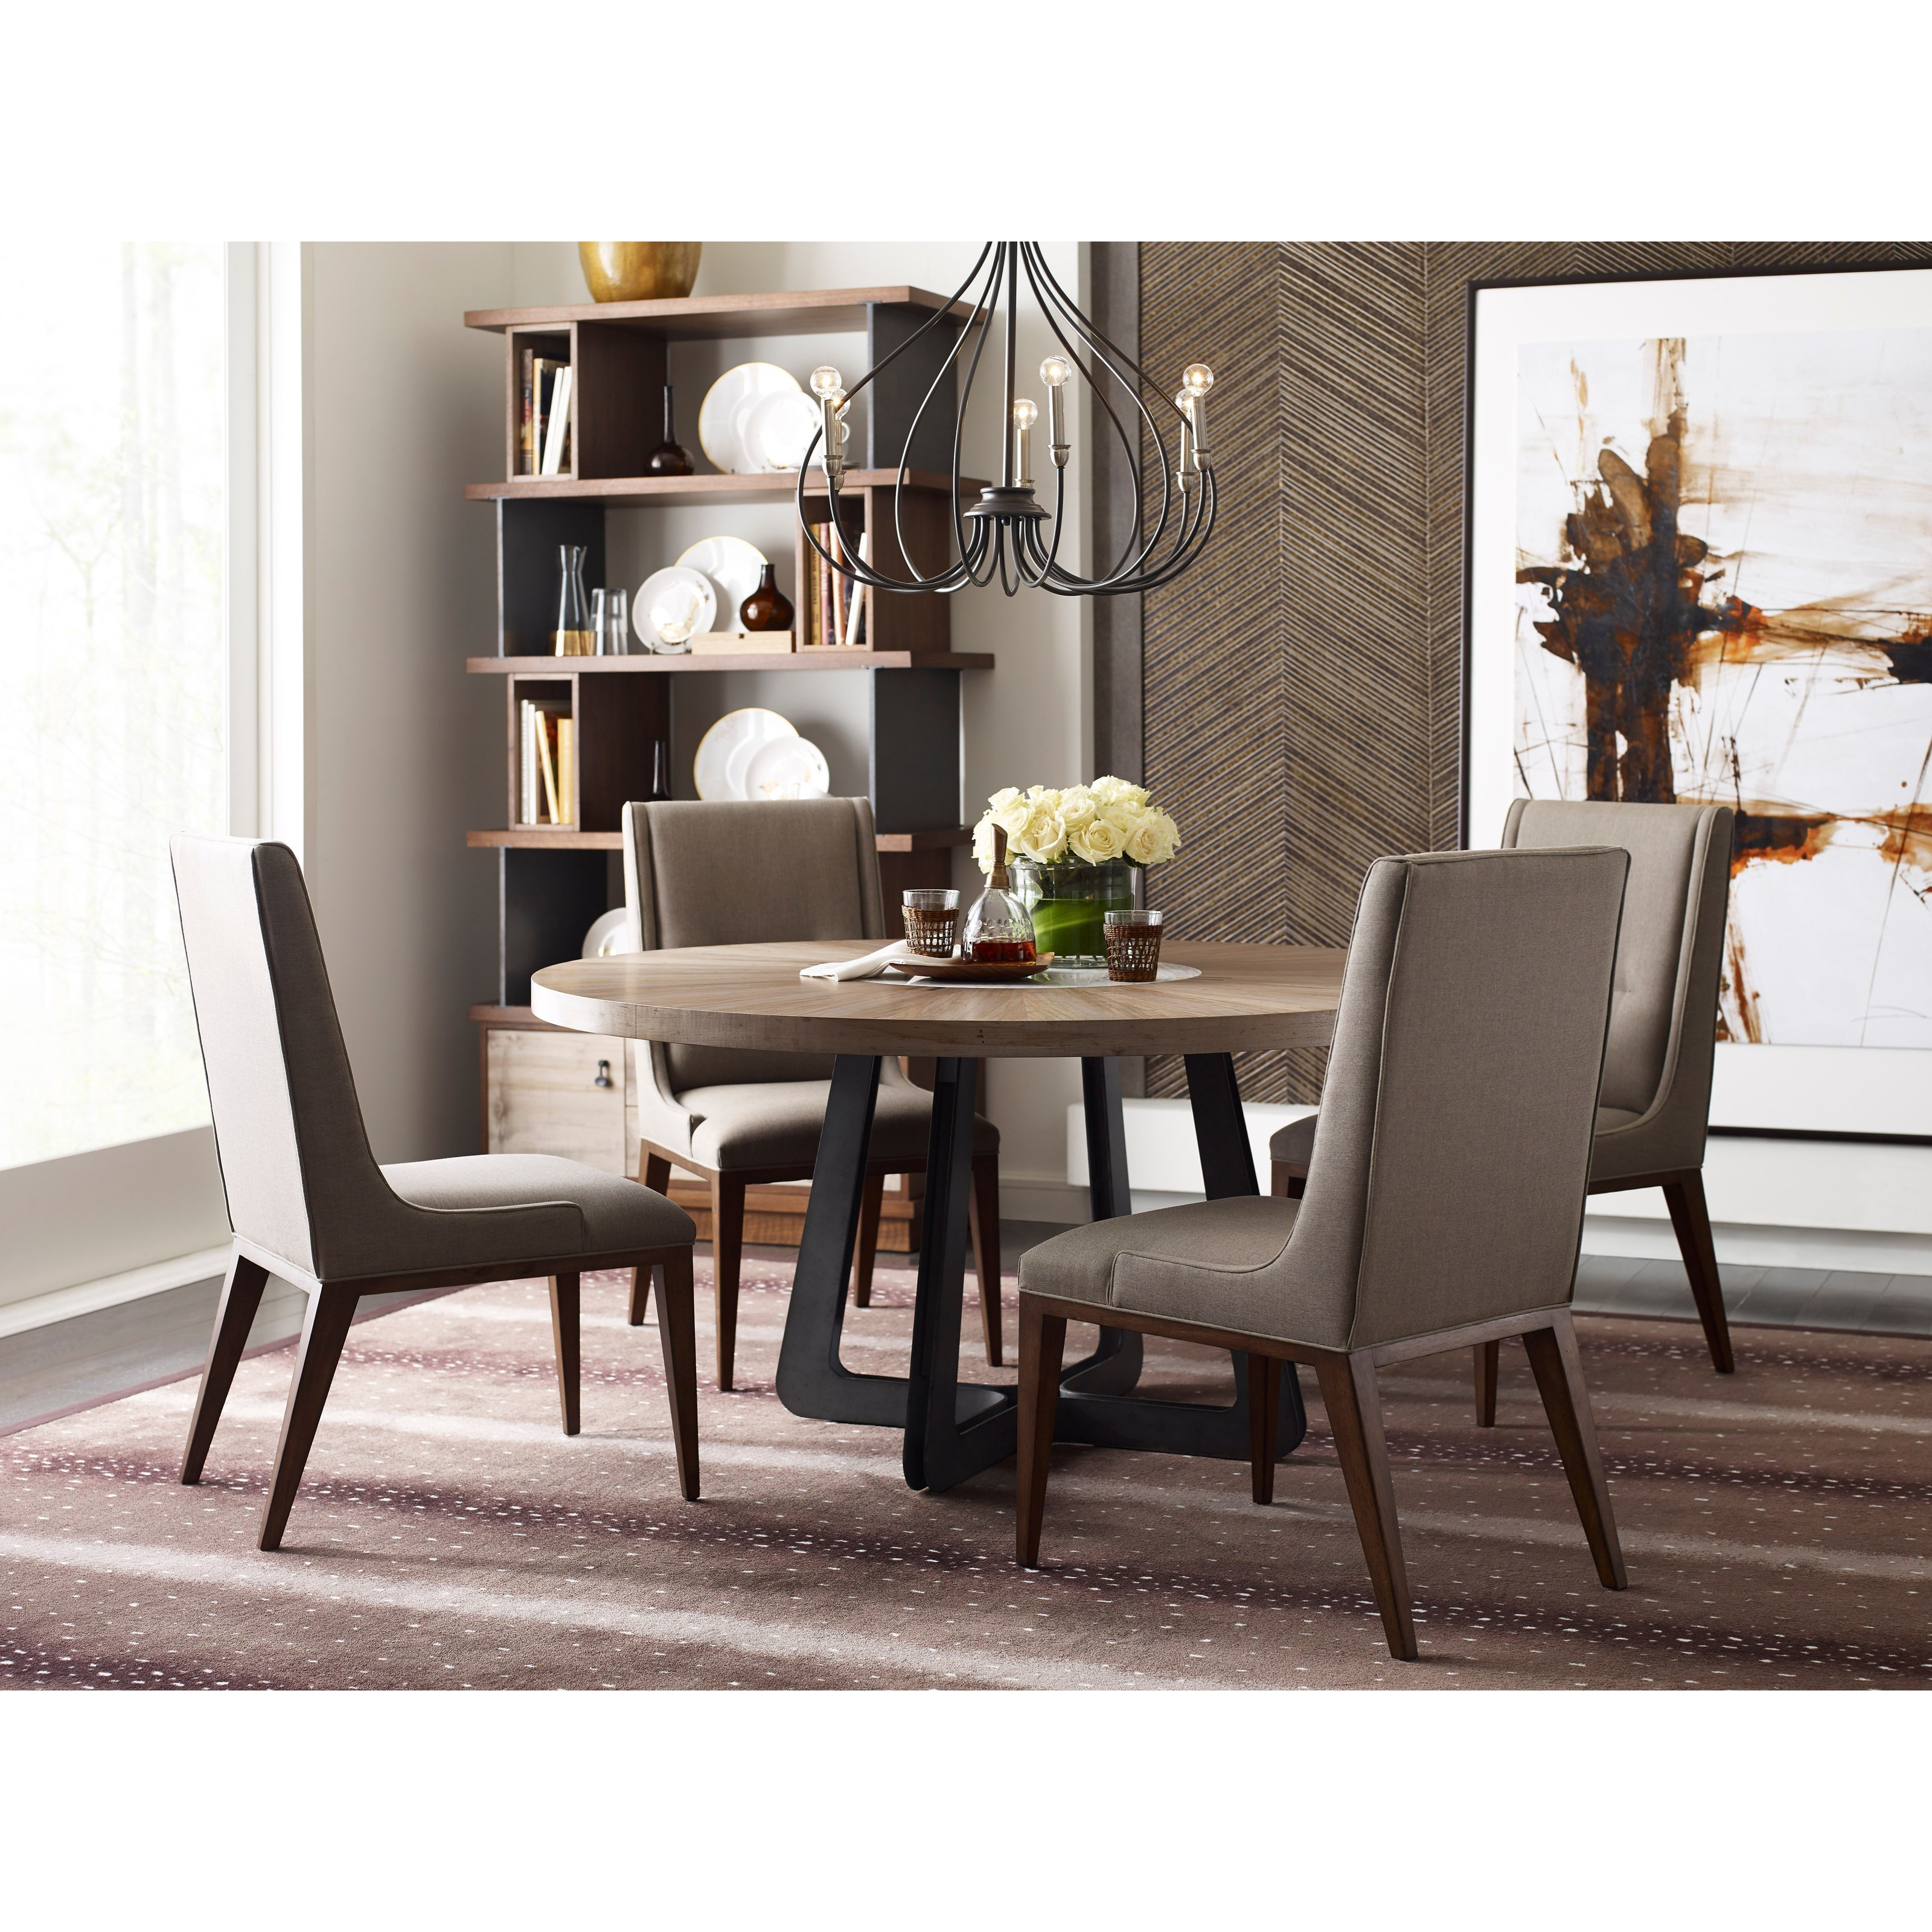 Contemporary Casual Dining Room Group with Round Table